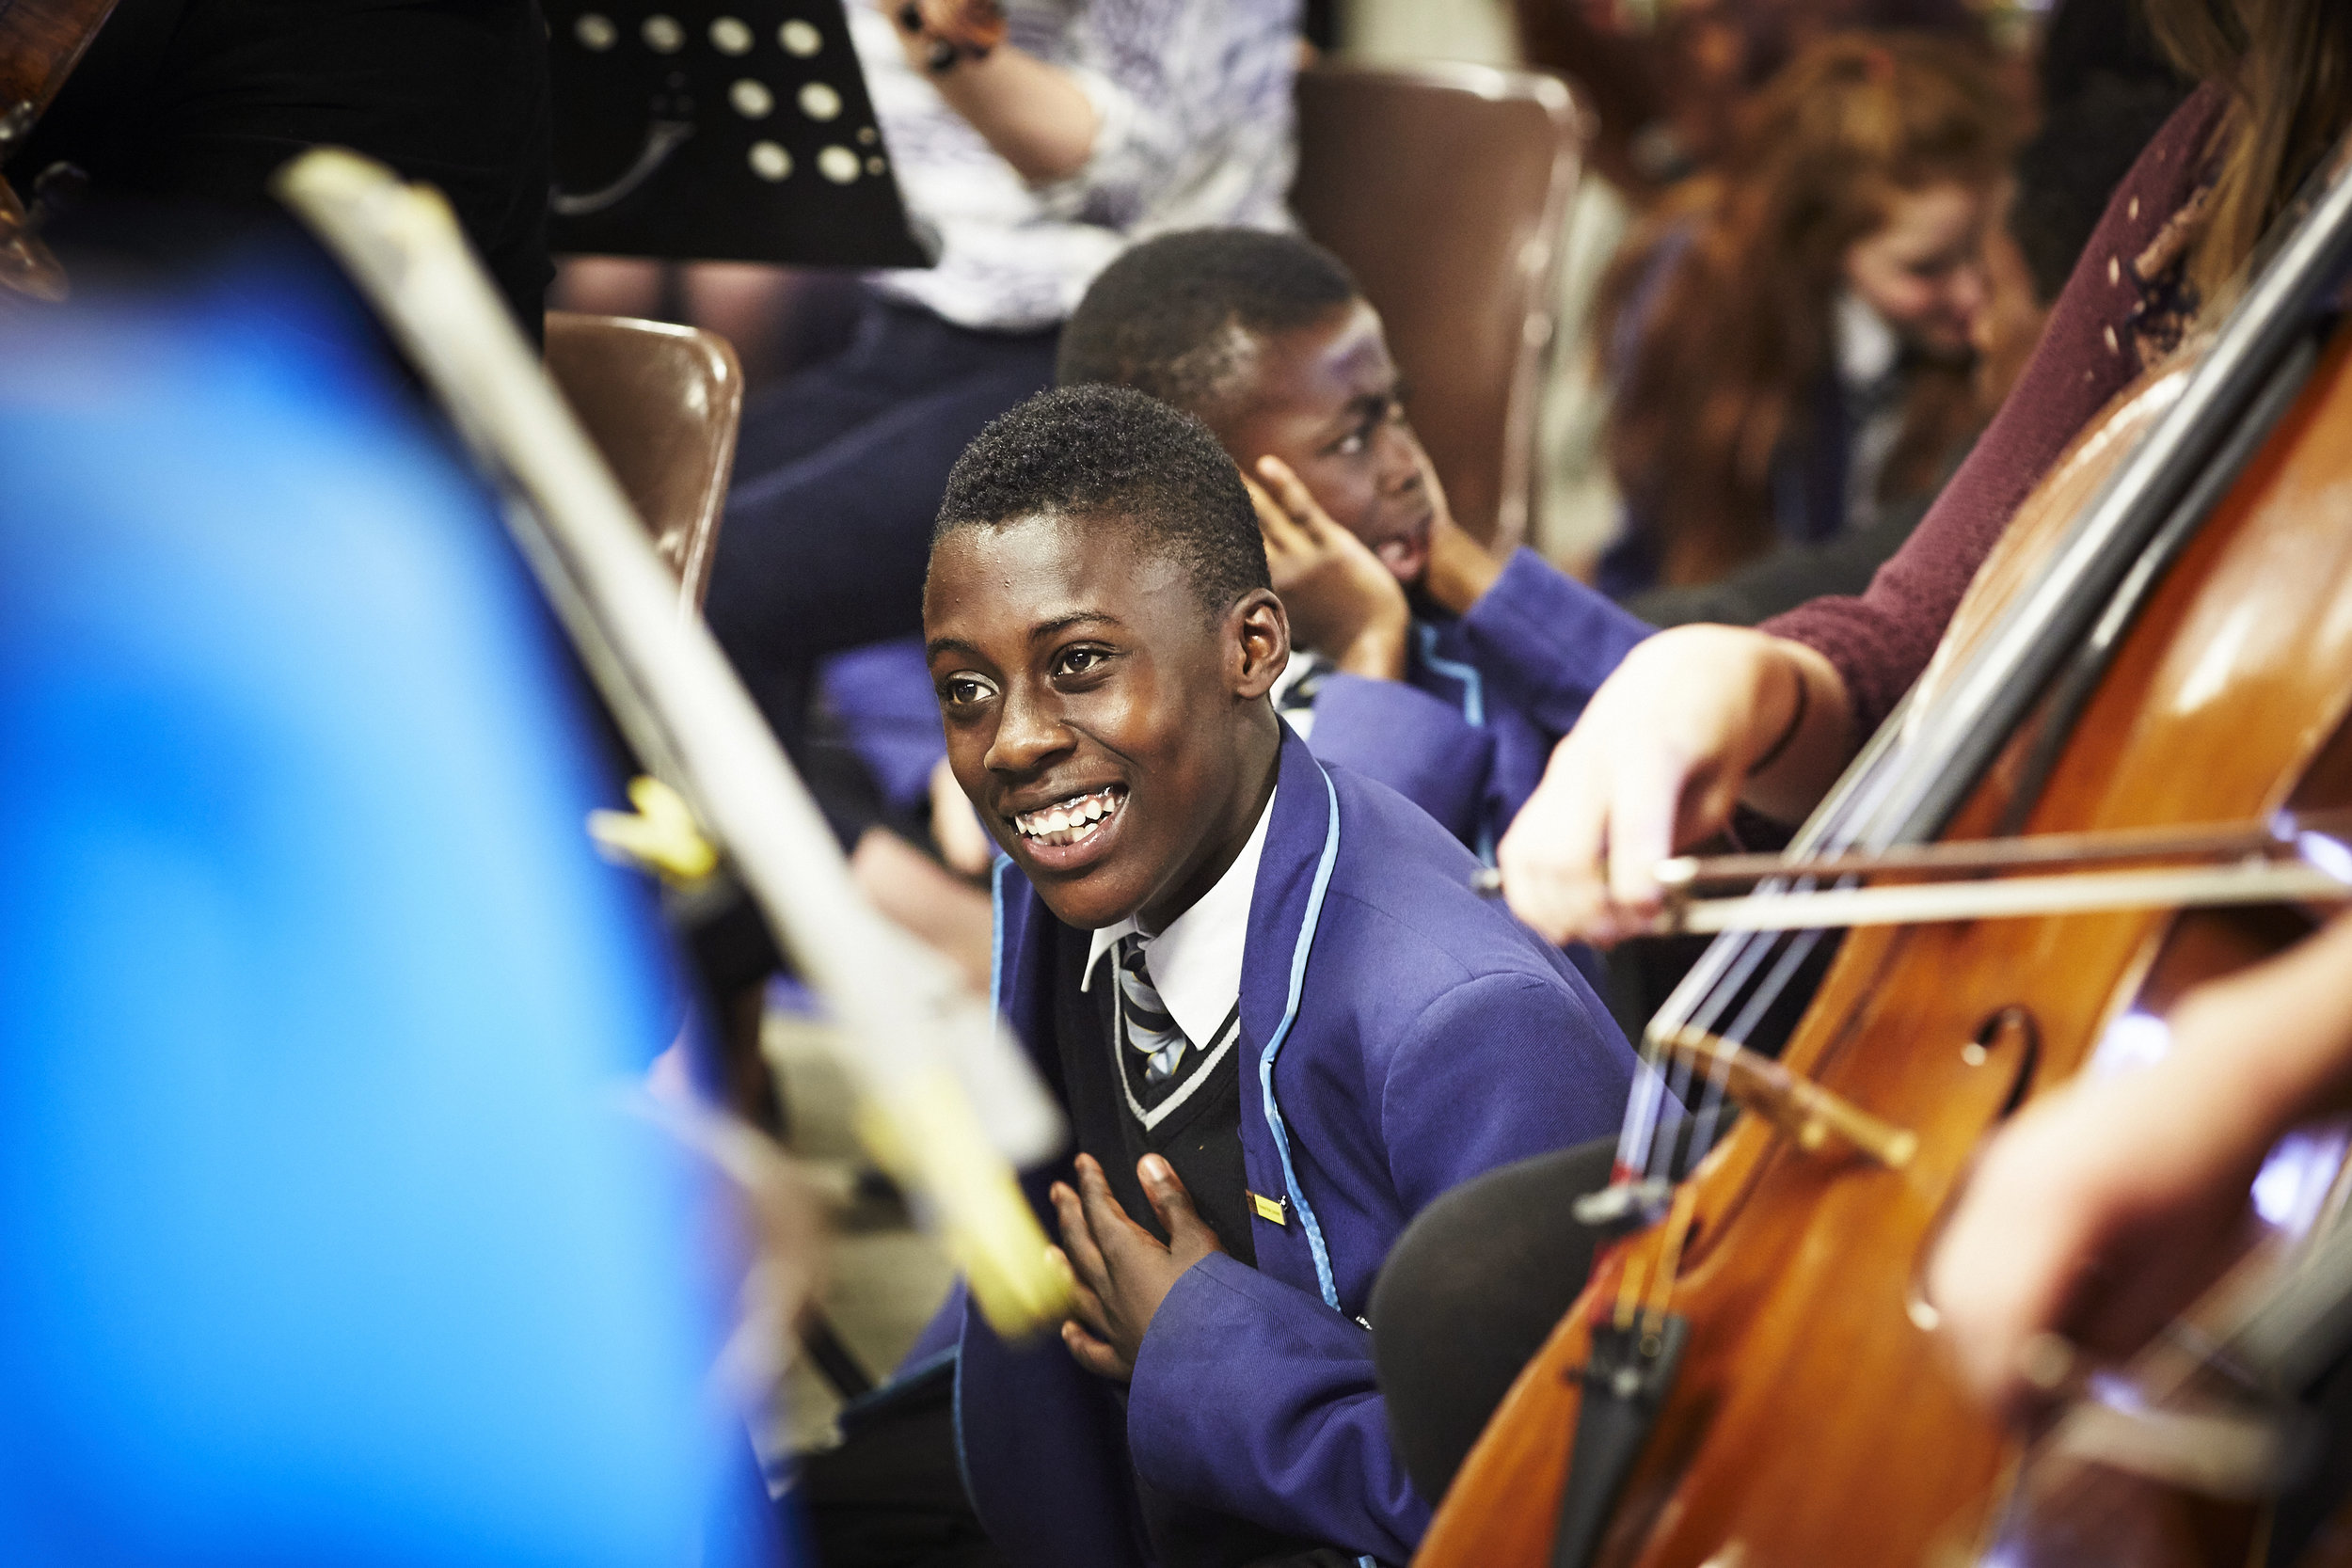 Student from Harris Academy Peckham sits in The Multi-Story Orchestra (c) Ambra Vernuccio